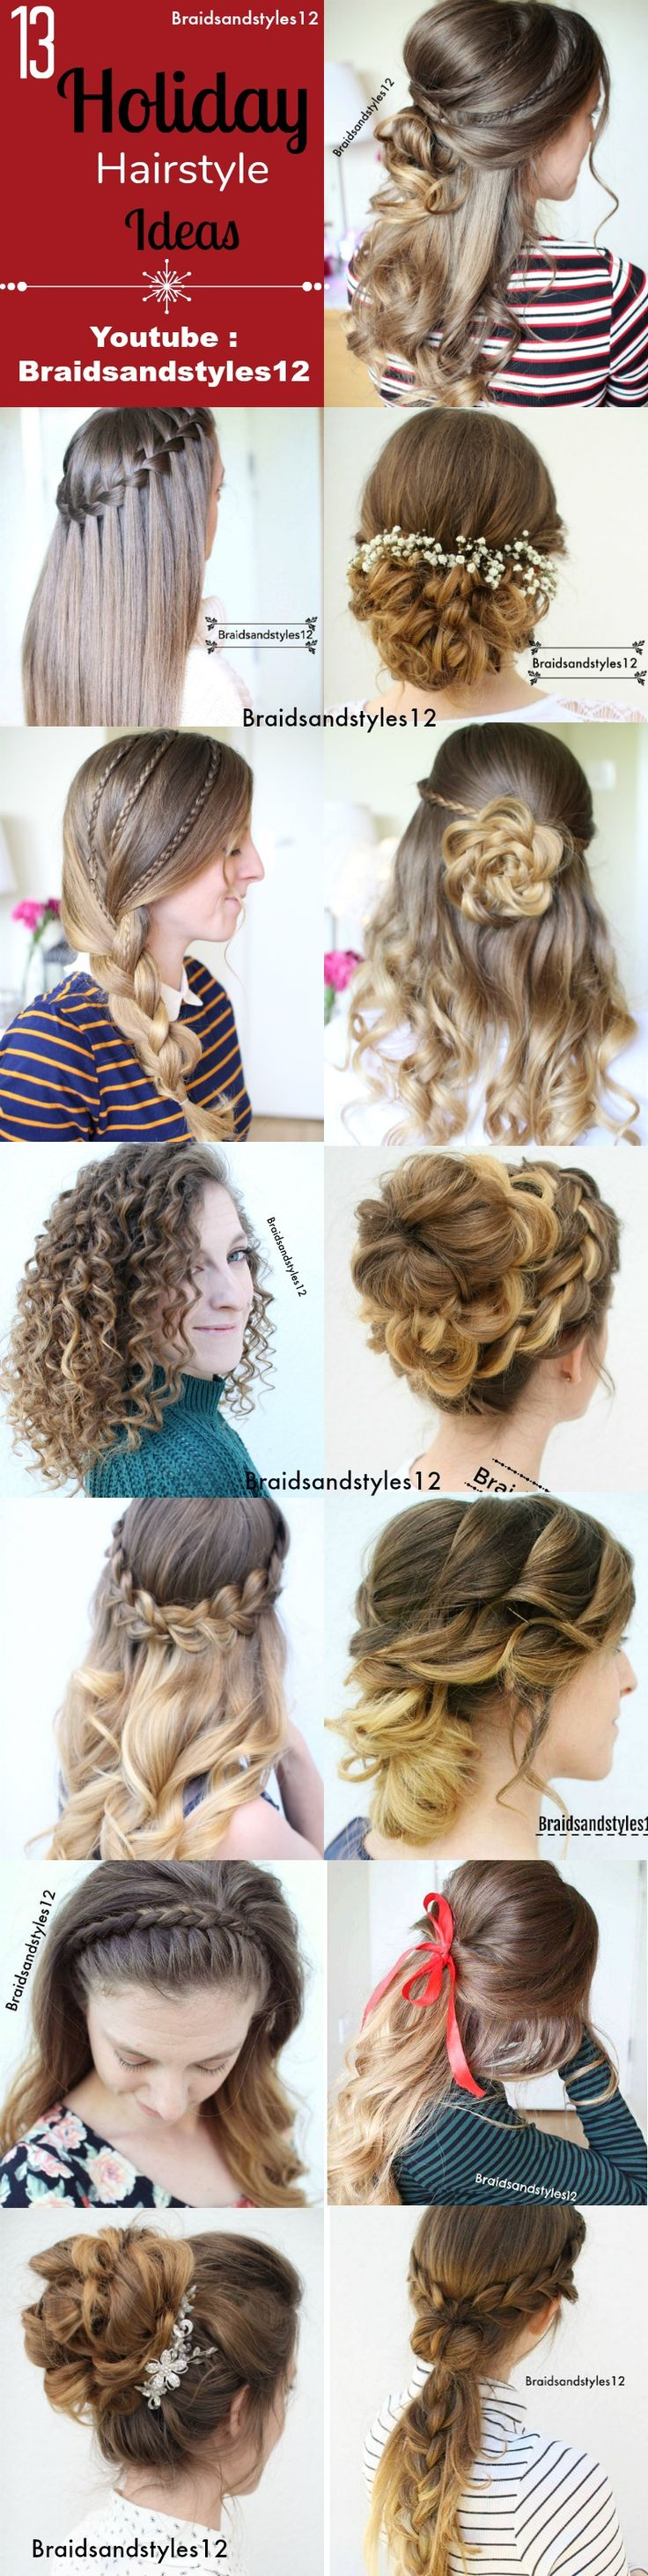 257 best BRAIDSANDSTYLES12 images on Pinterest